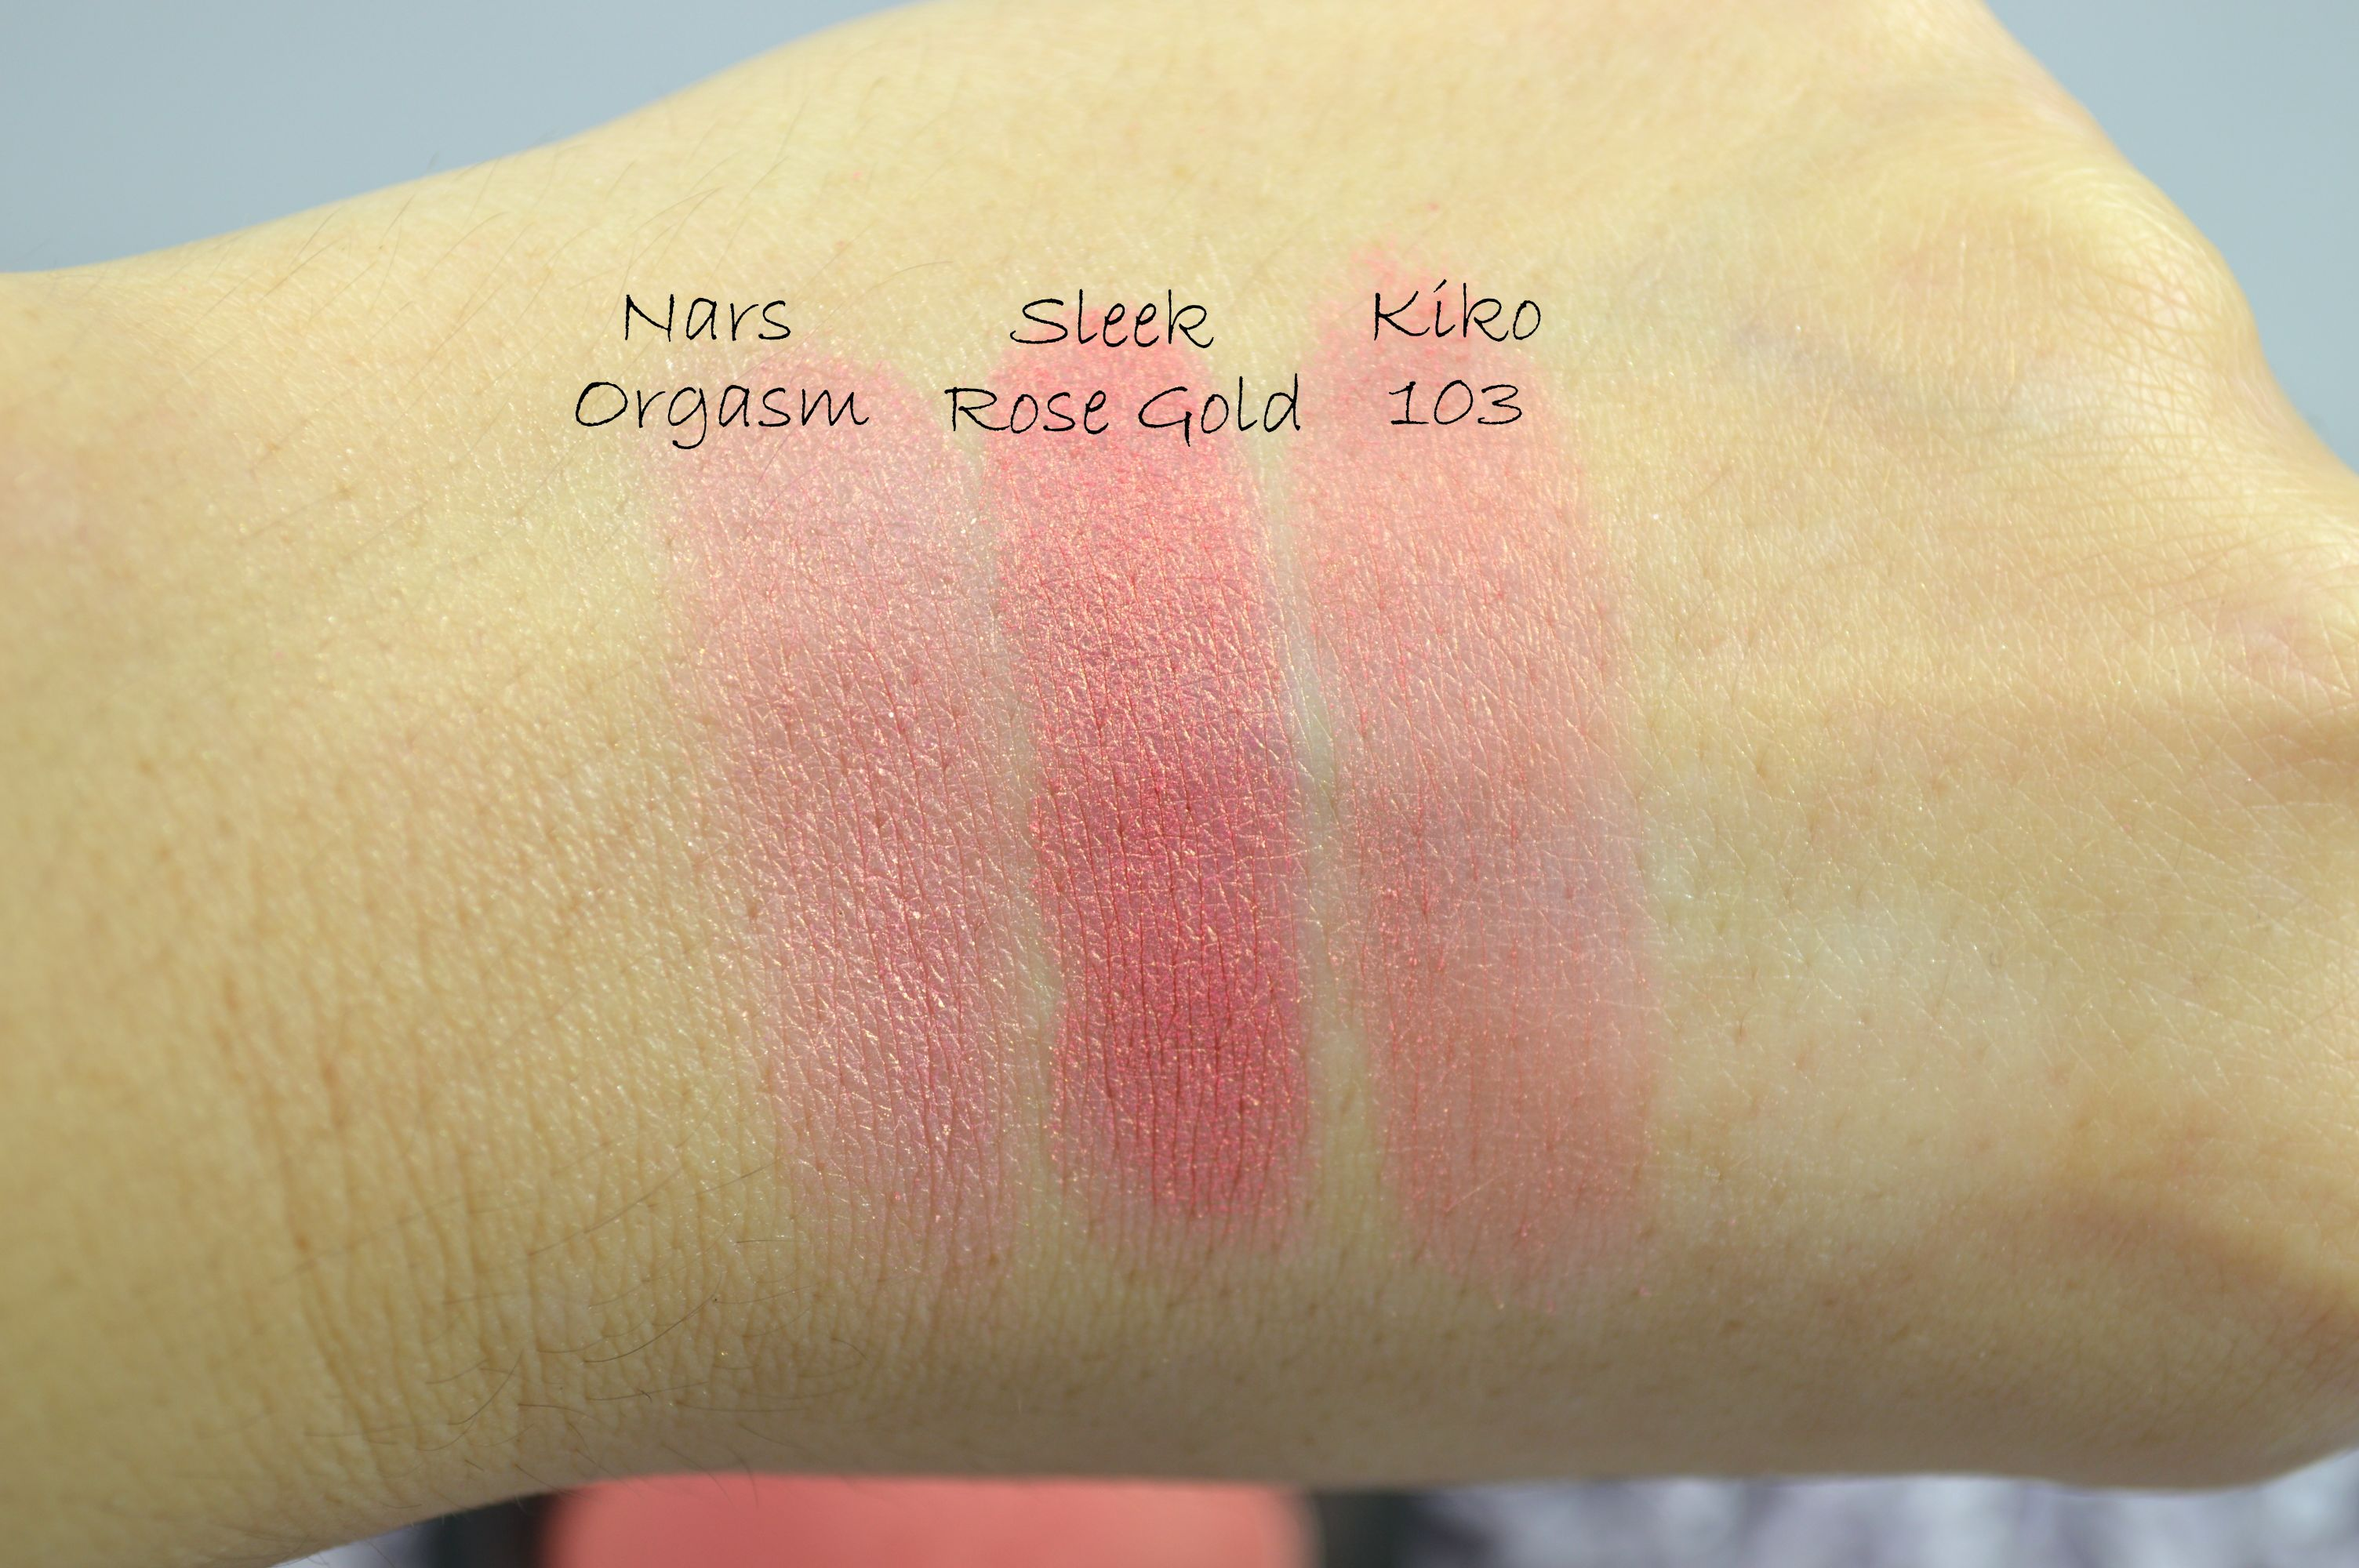 Dupe Nars Sleek Kiko Swatches